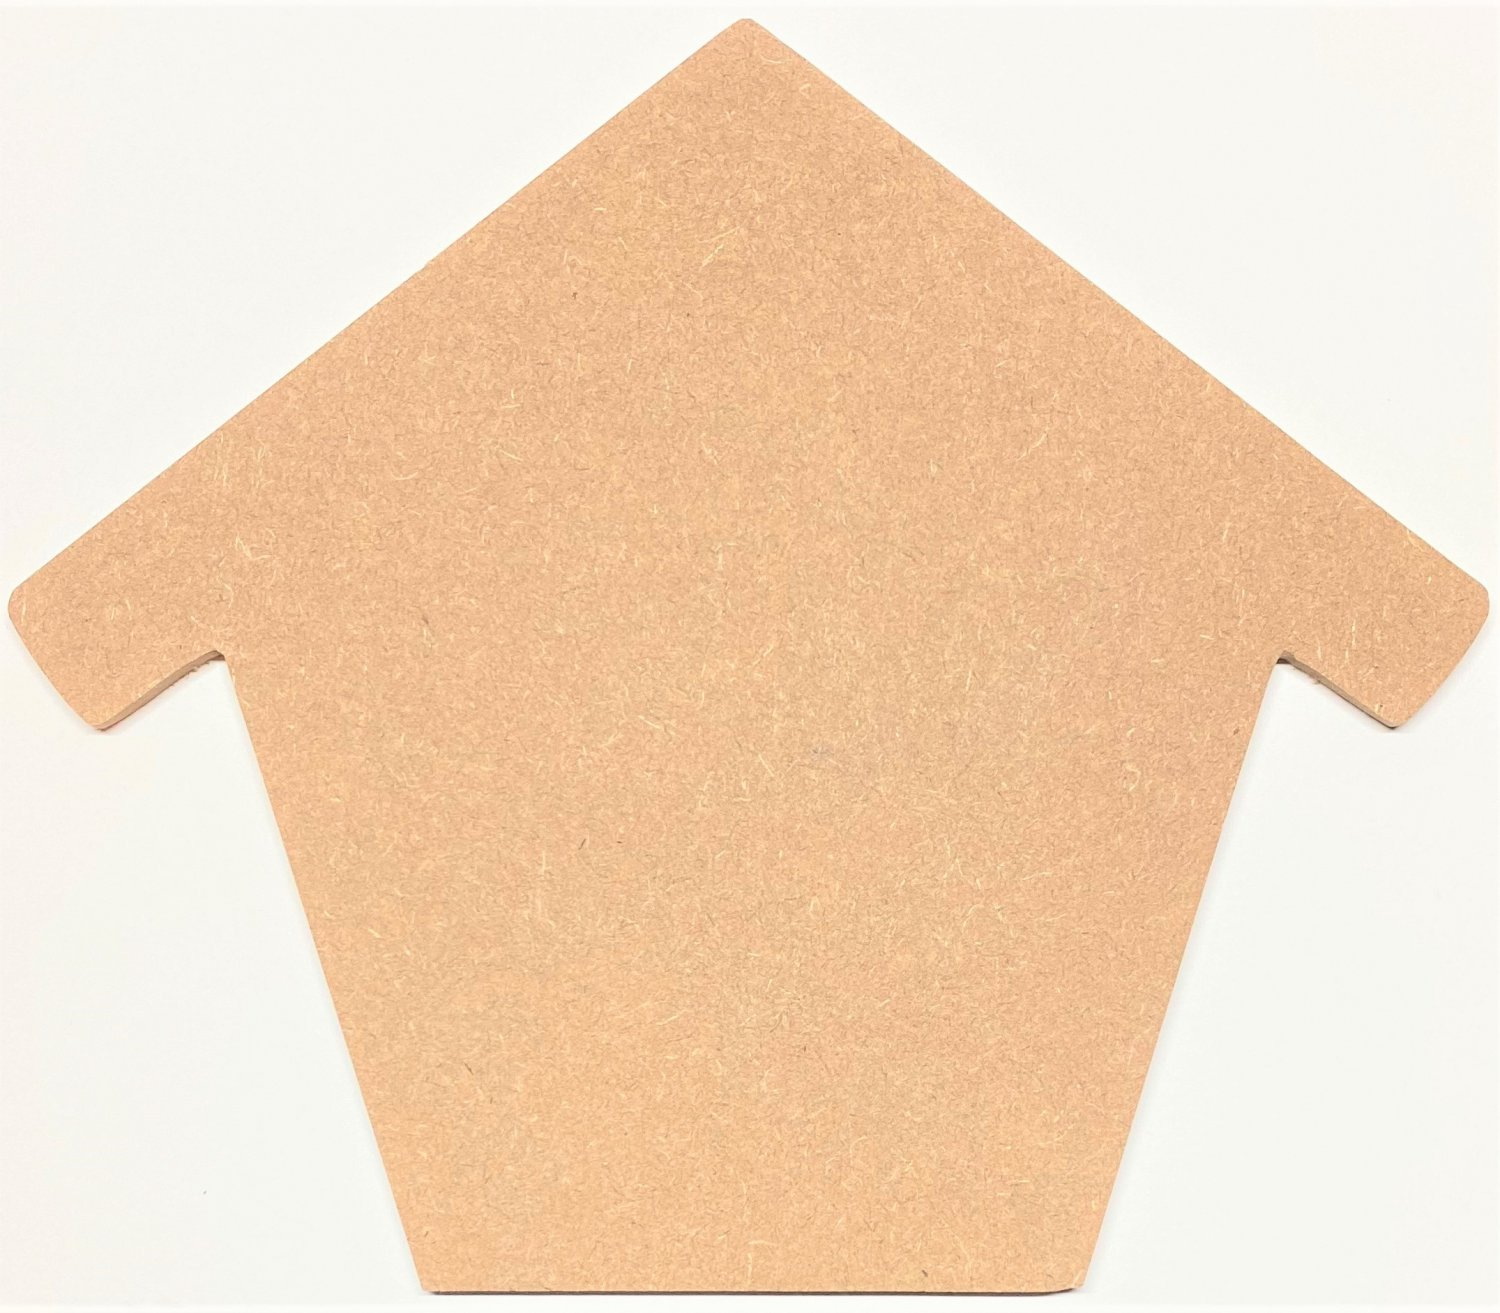 """12"""" - Bird House - 1/4""""Thick MDF Cut Out Made in the USA"""